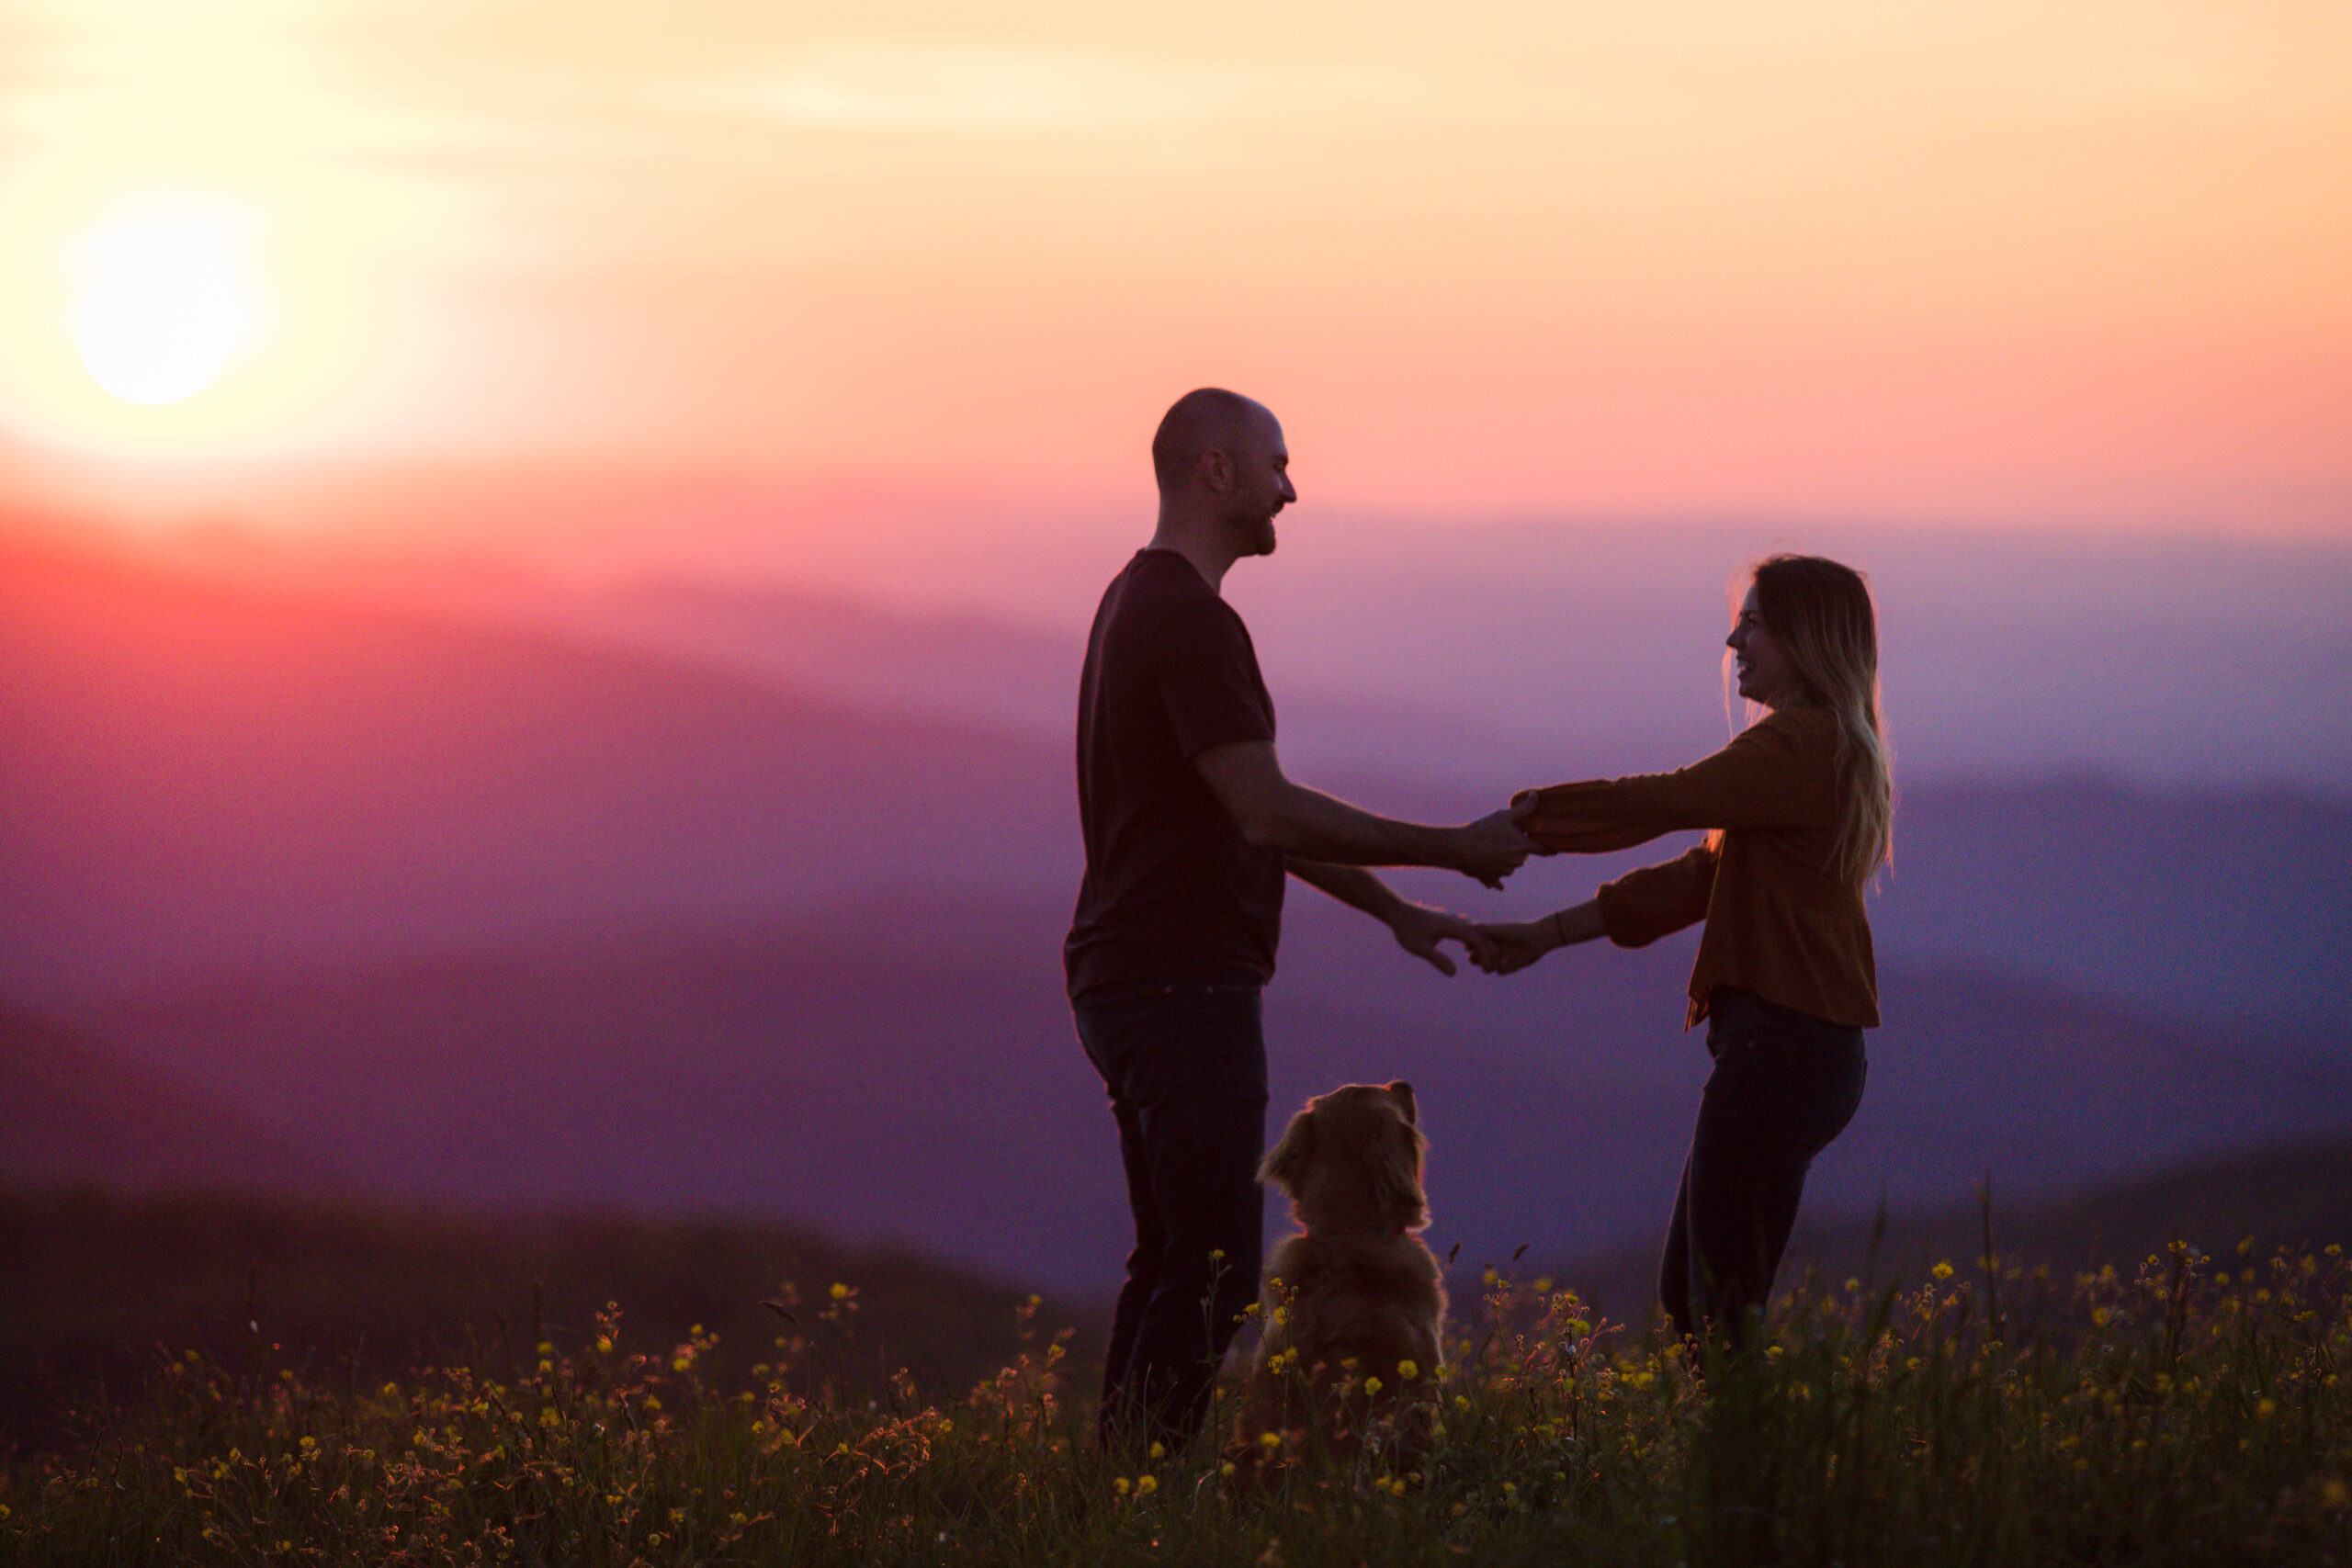 Asheville Proposal Photographer -A picture have a couple dancing in a field of yellow flower with purple and orange mountains in the background